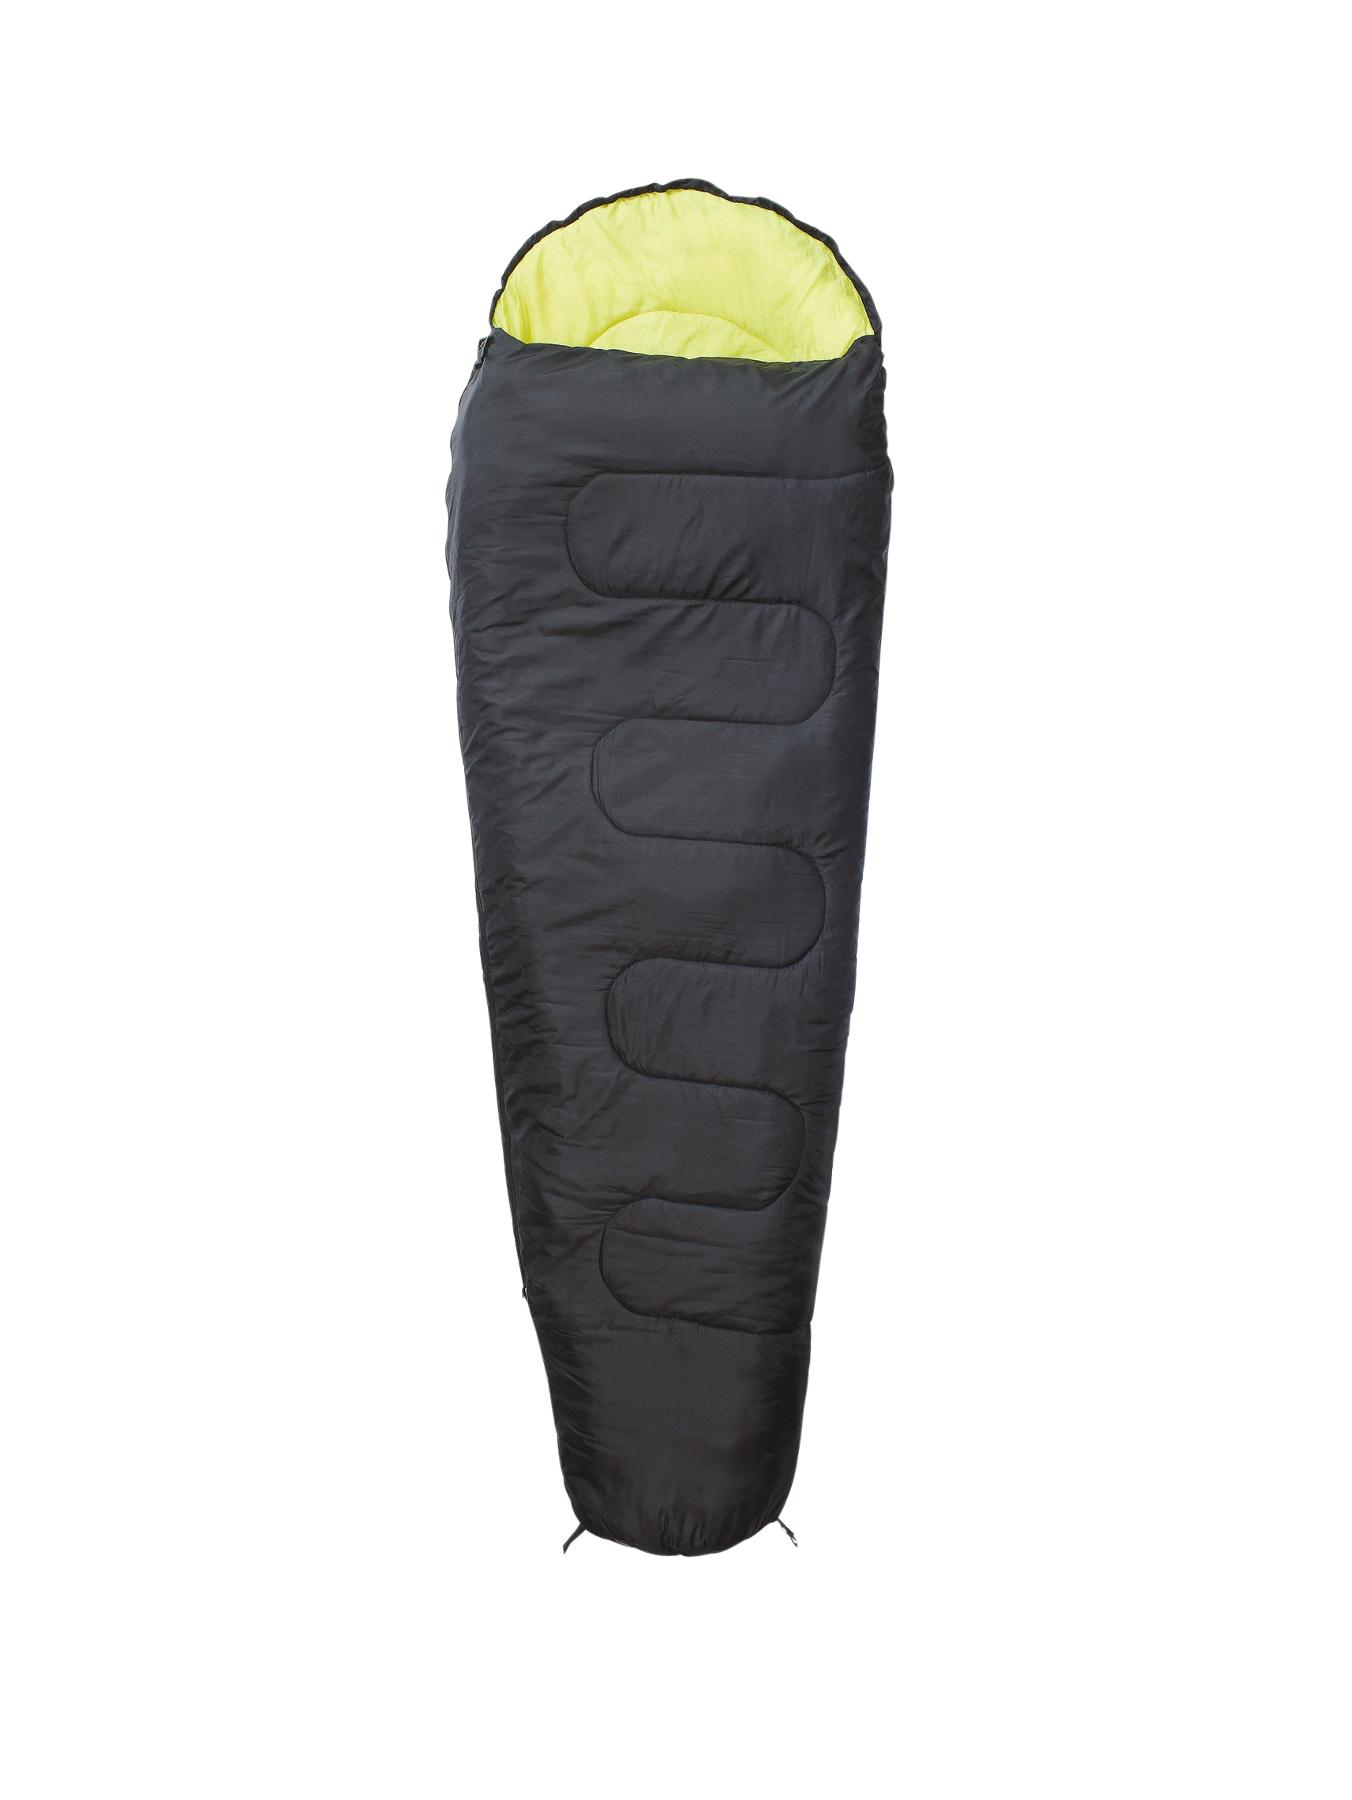 Essential Mummy Sleeping Bag